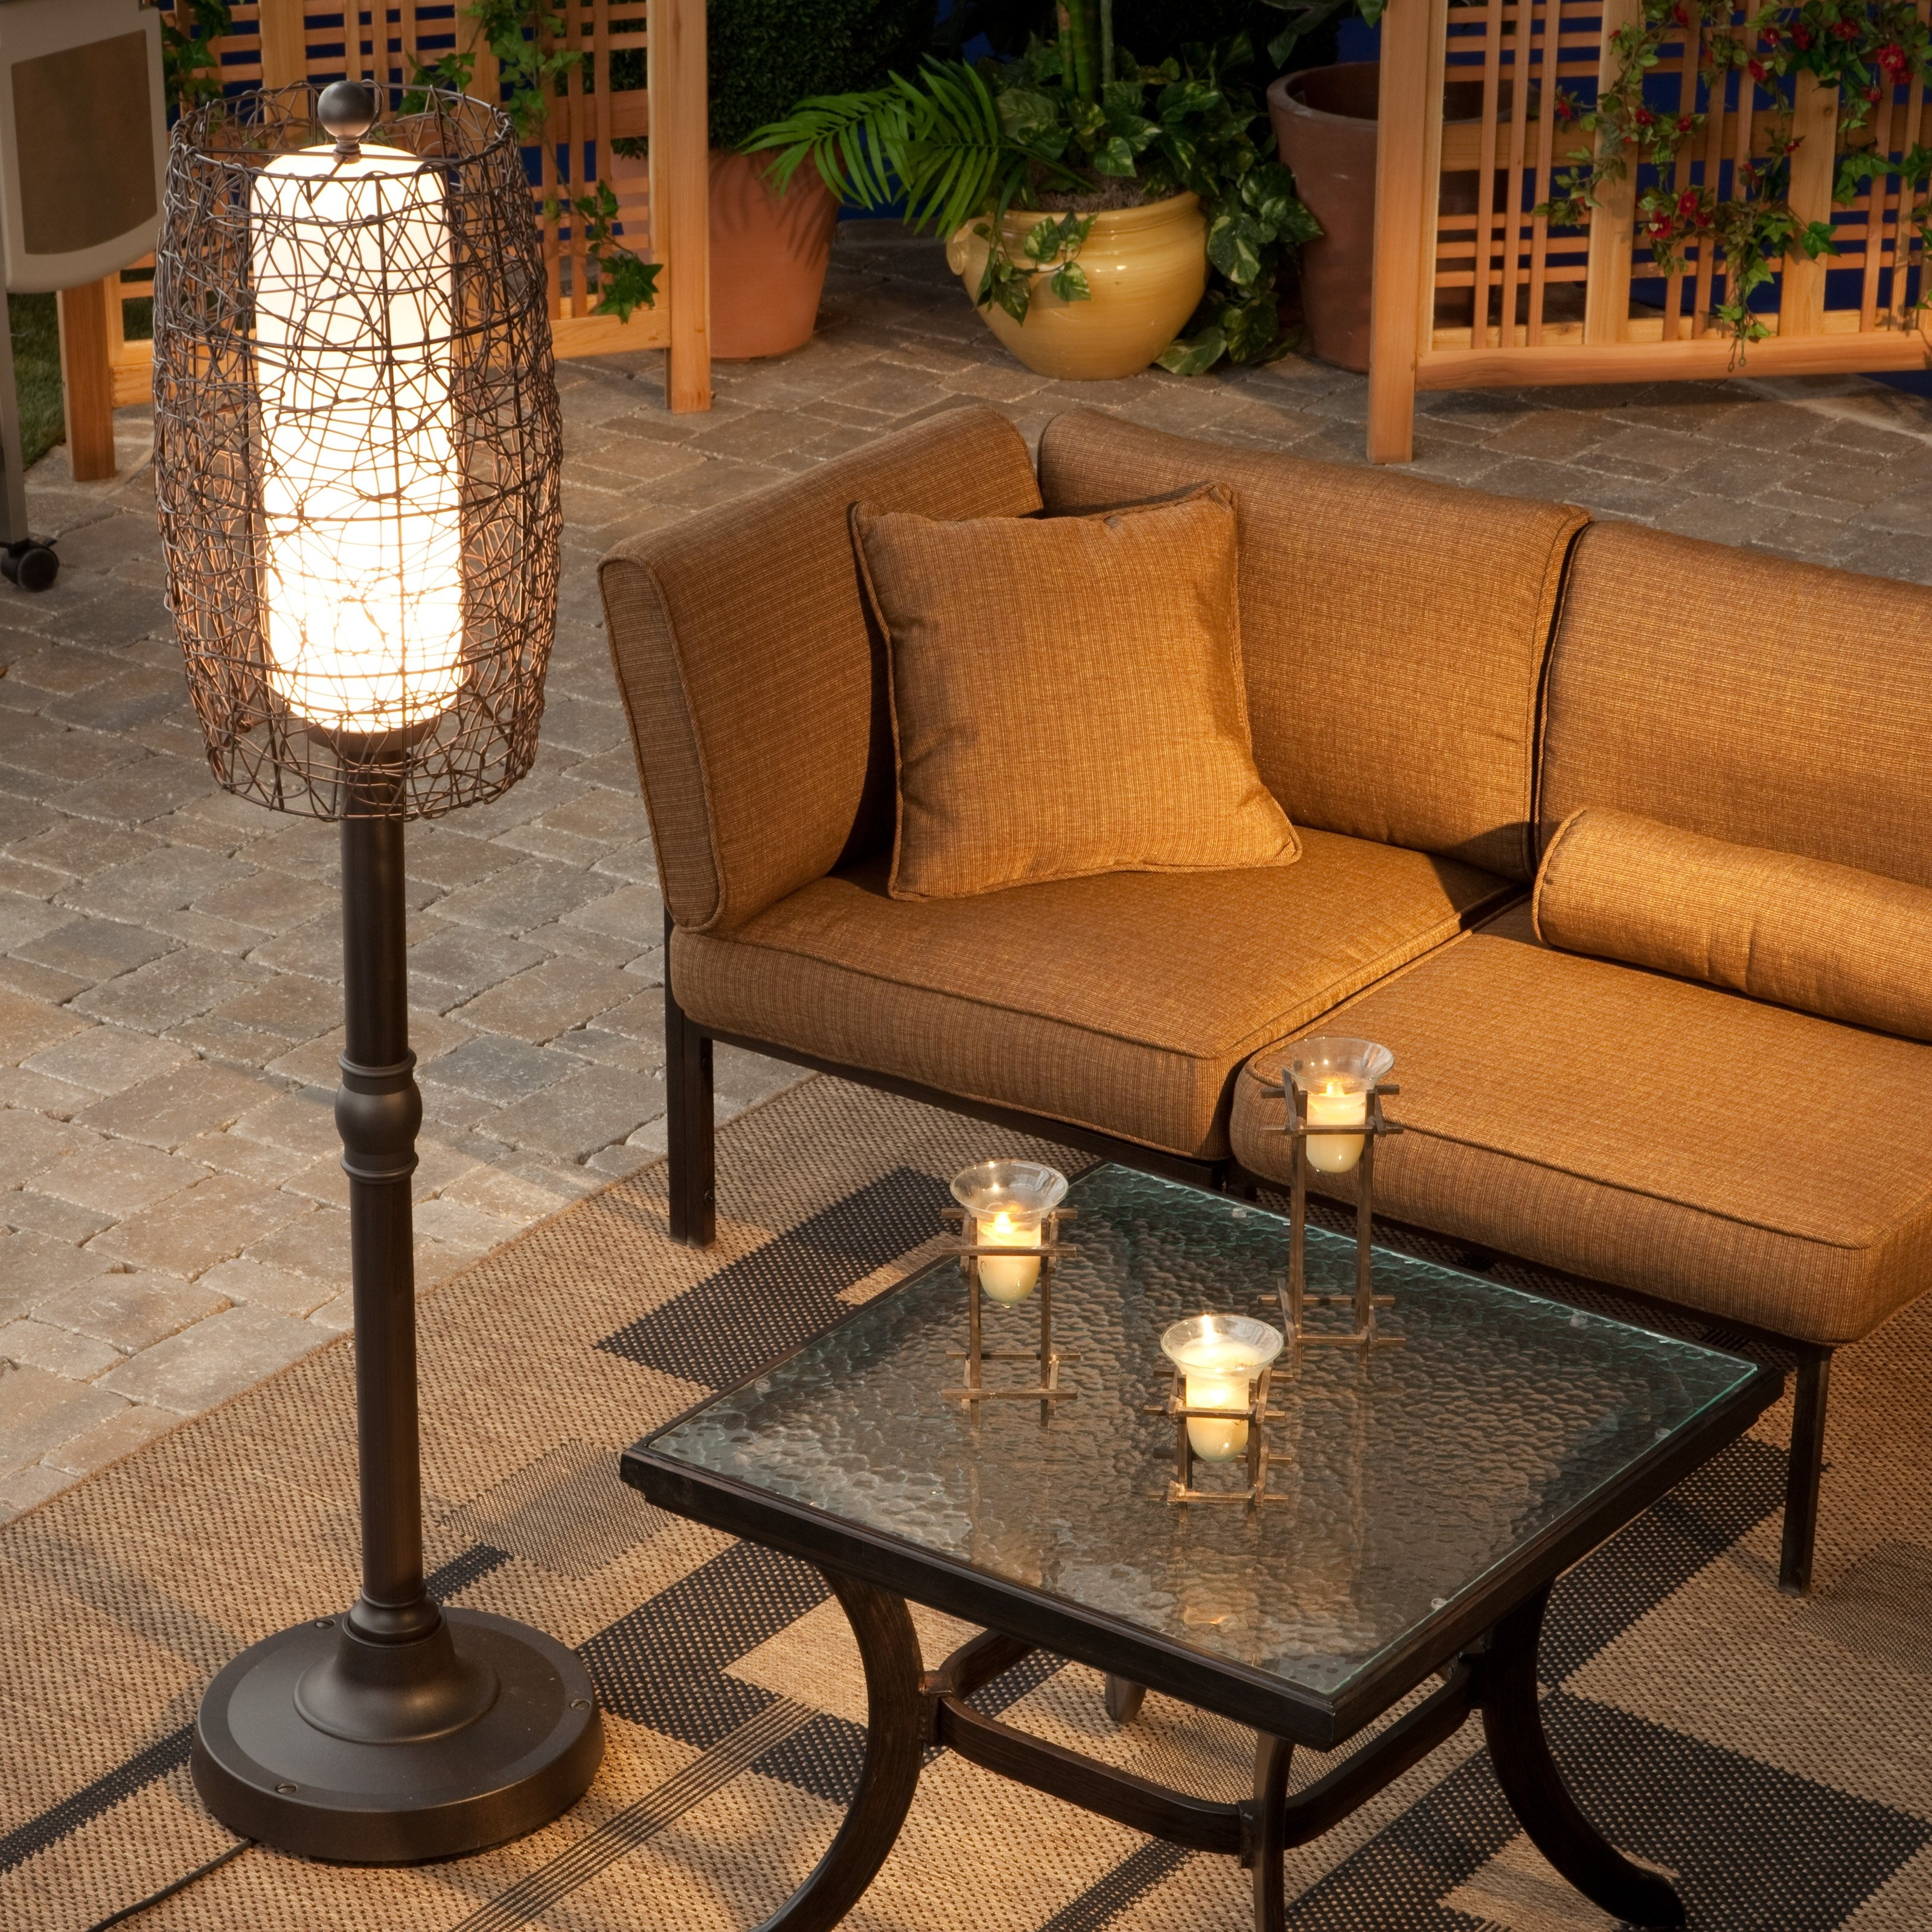 Fashionable Outdoor Lanterns For Patio For Bristol Outdoor Patio Floor Lamp (View 4 of 20)